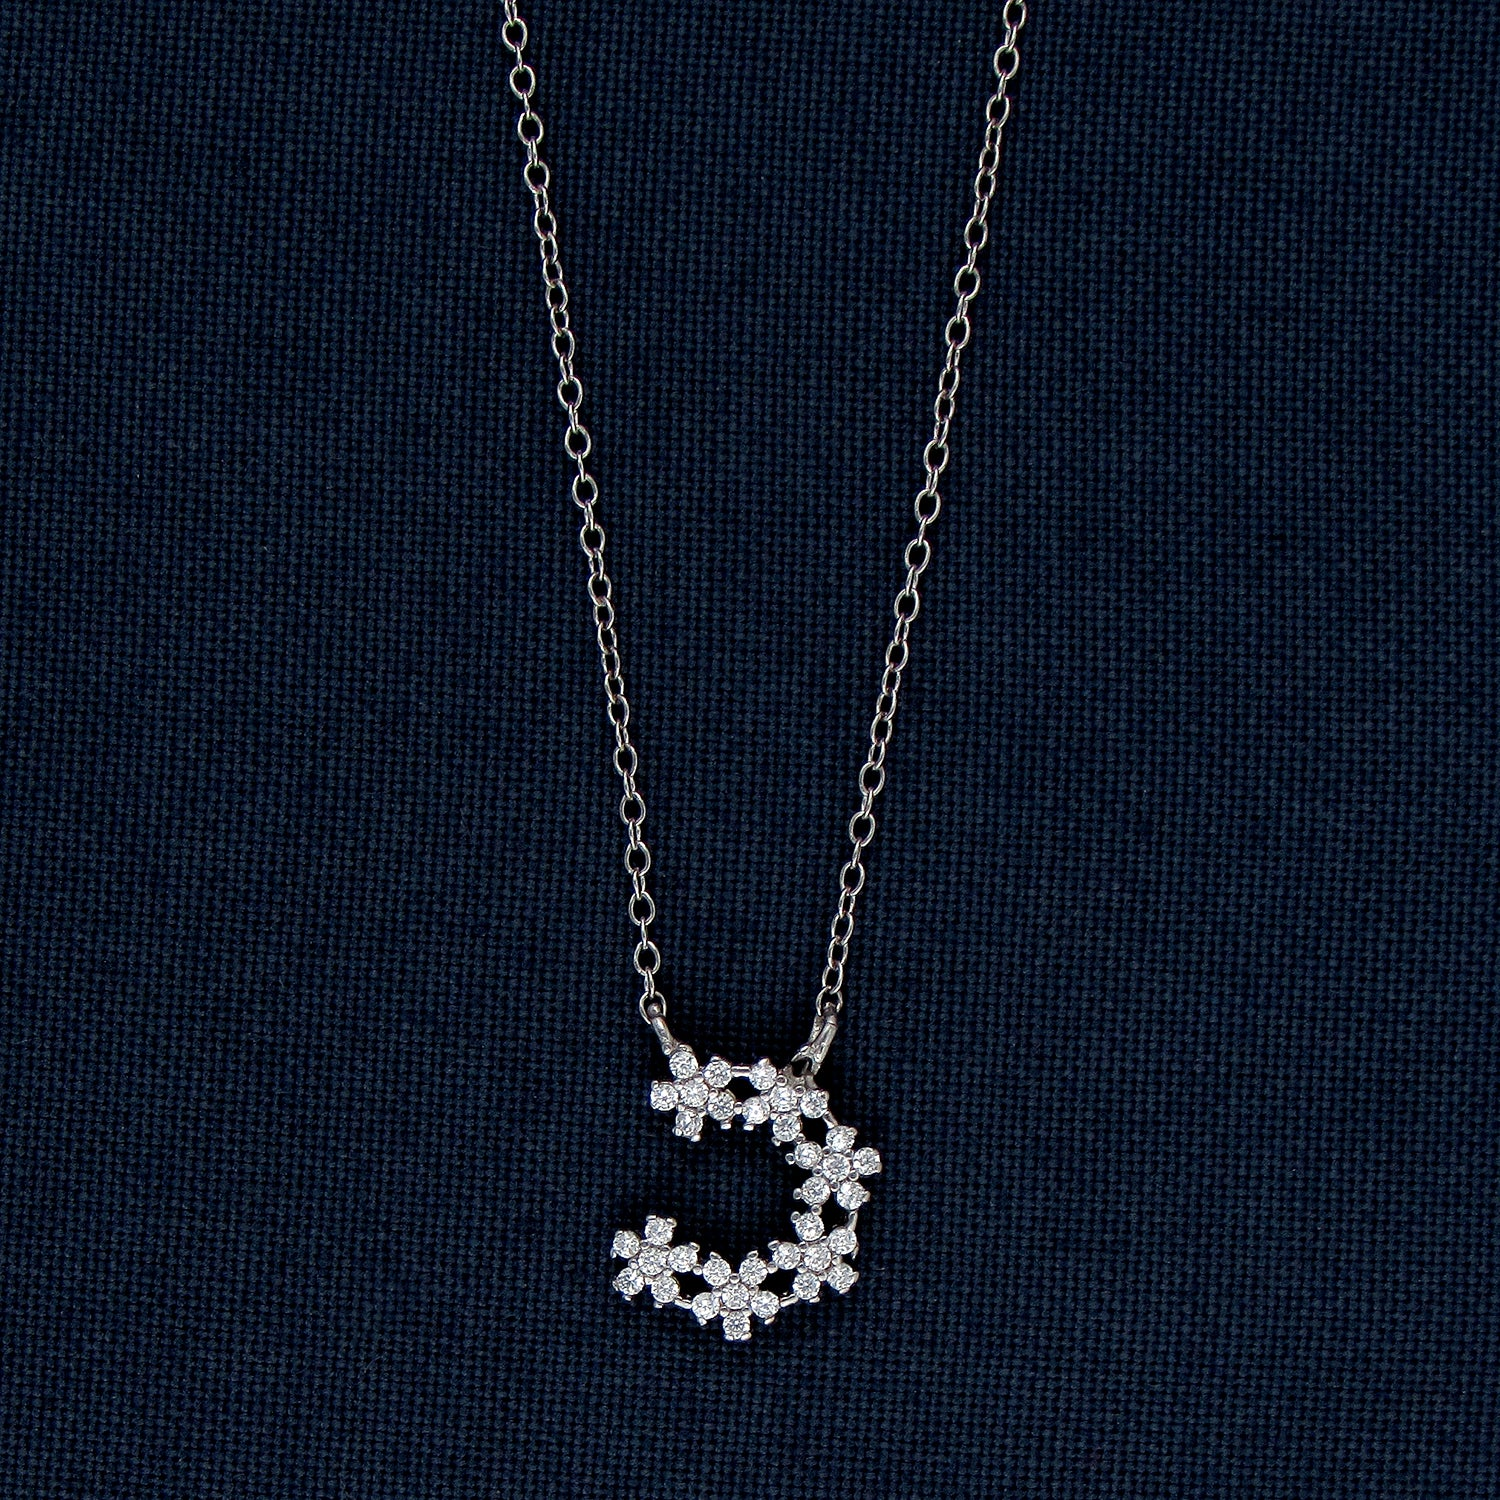 Buy Inverted C Design Silver Pendant With Tiny Sparkling Stones